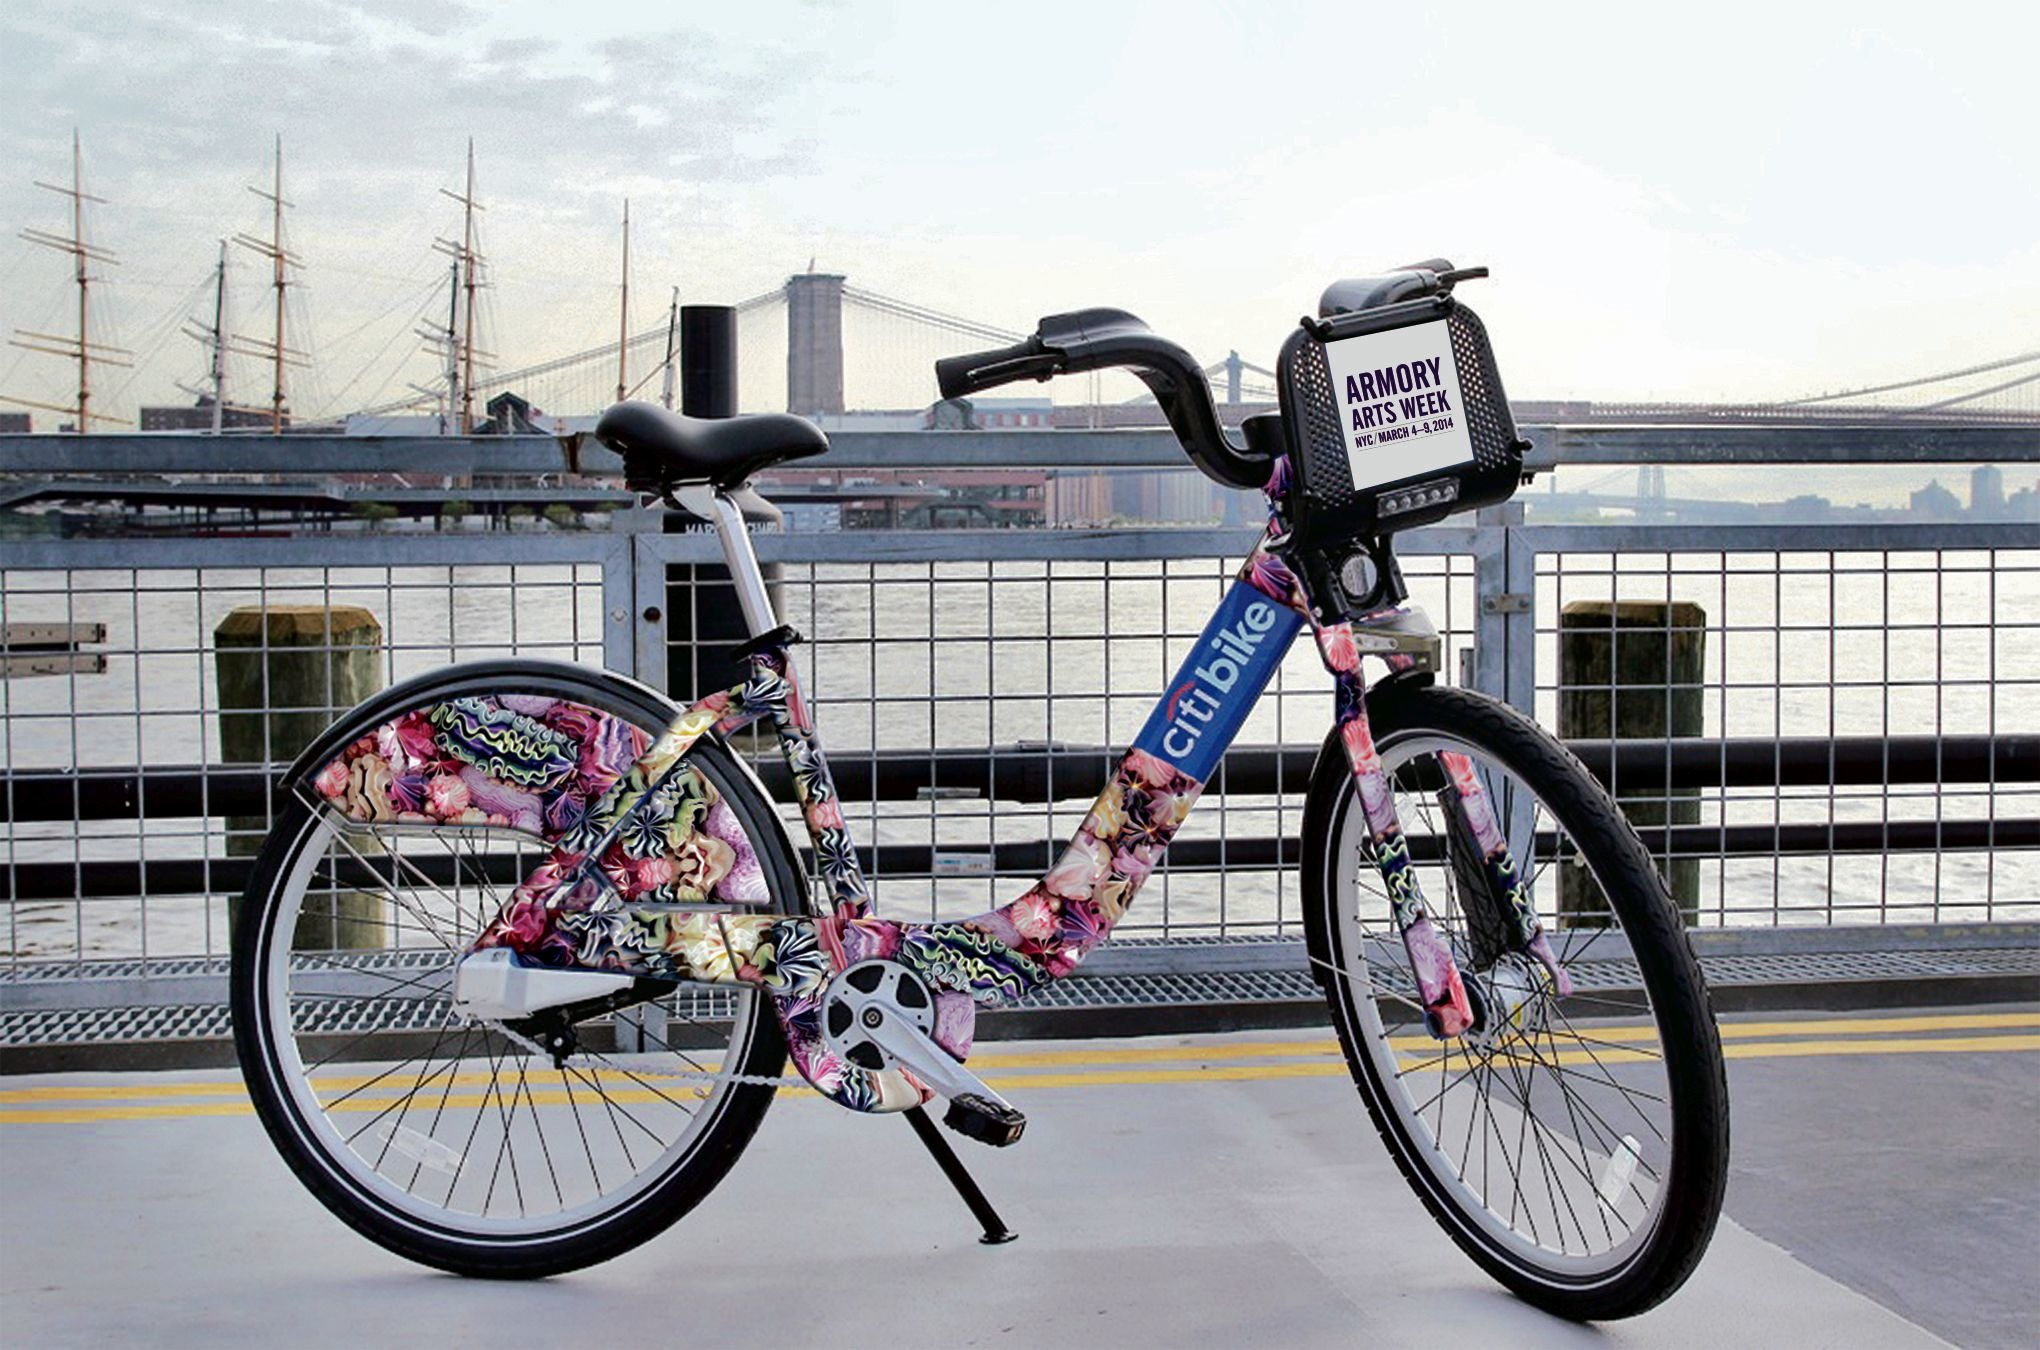 Ride a limited-edition, arty Citi Bike during the Armory Show